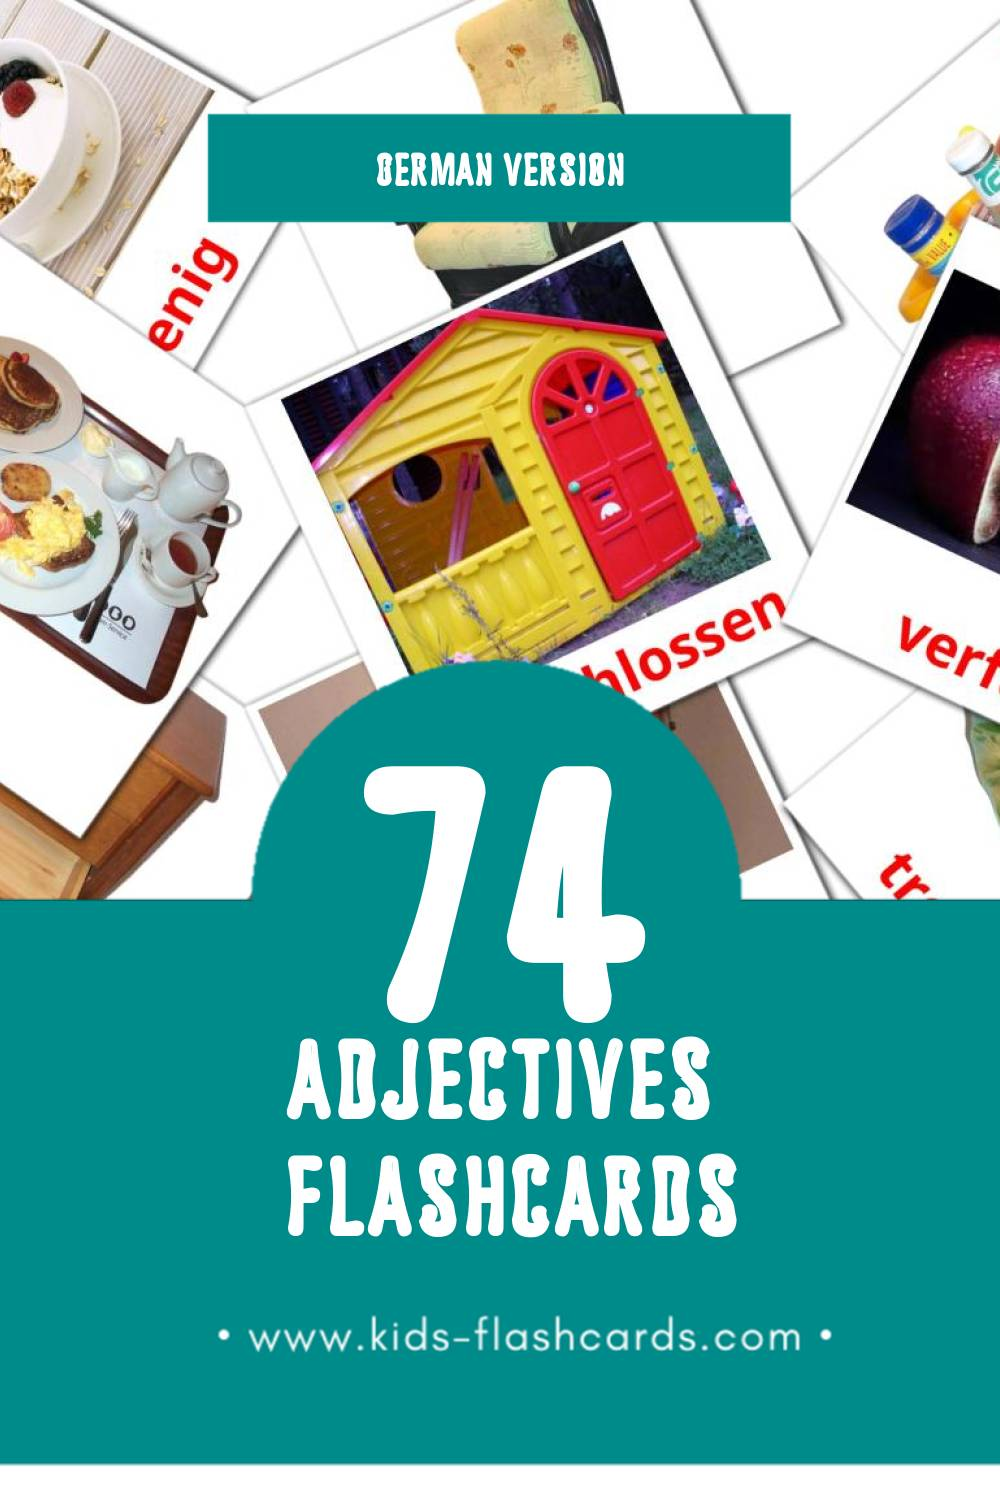 Visual Adjektive Flashcards for Toddlers (74 cards in German)